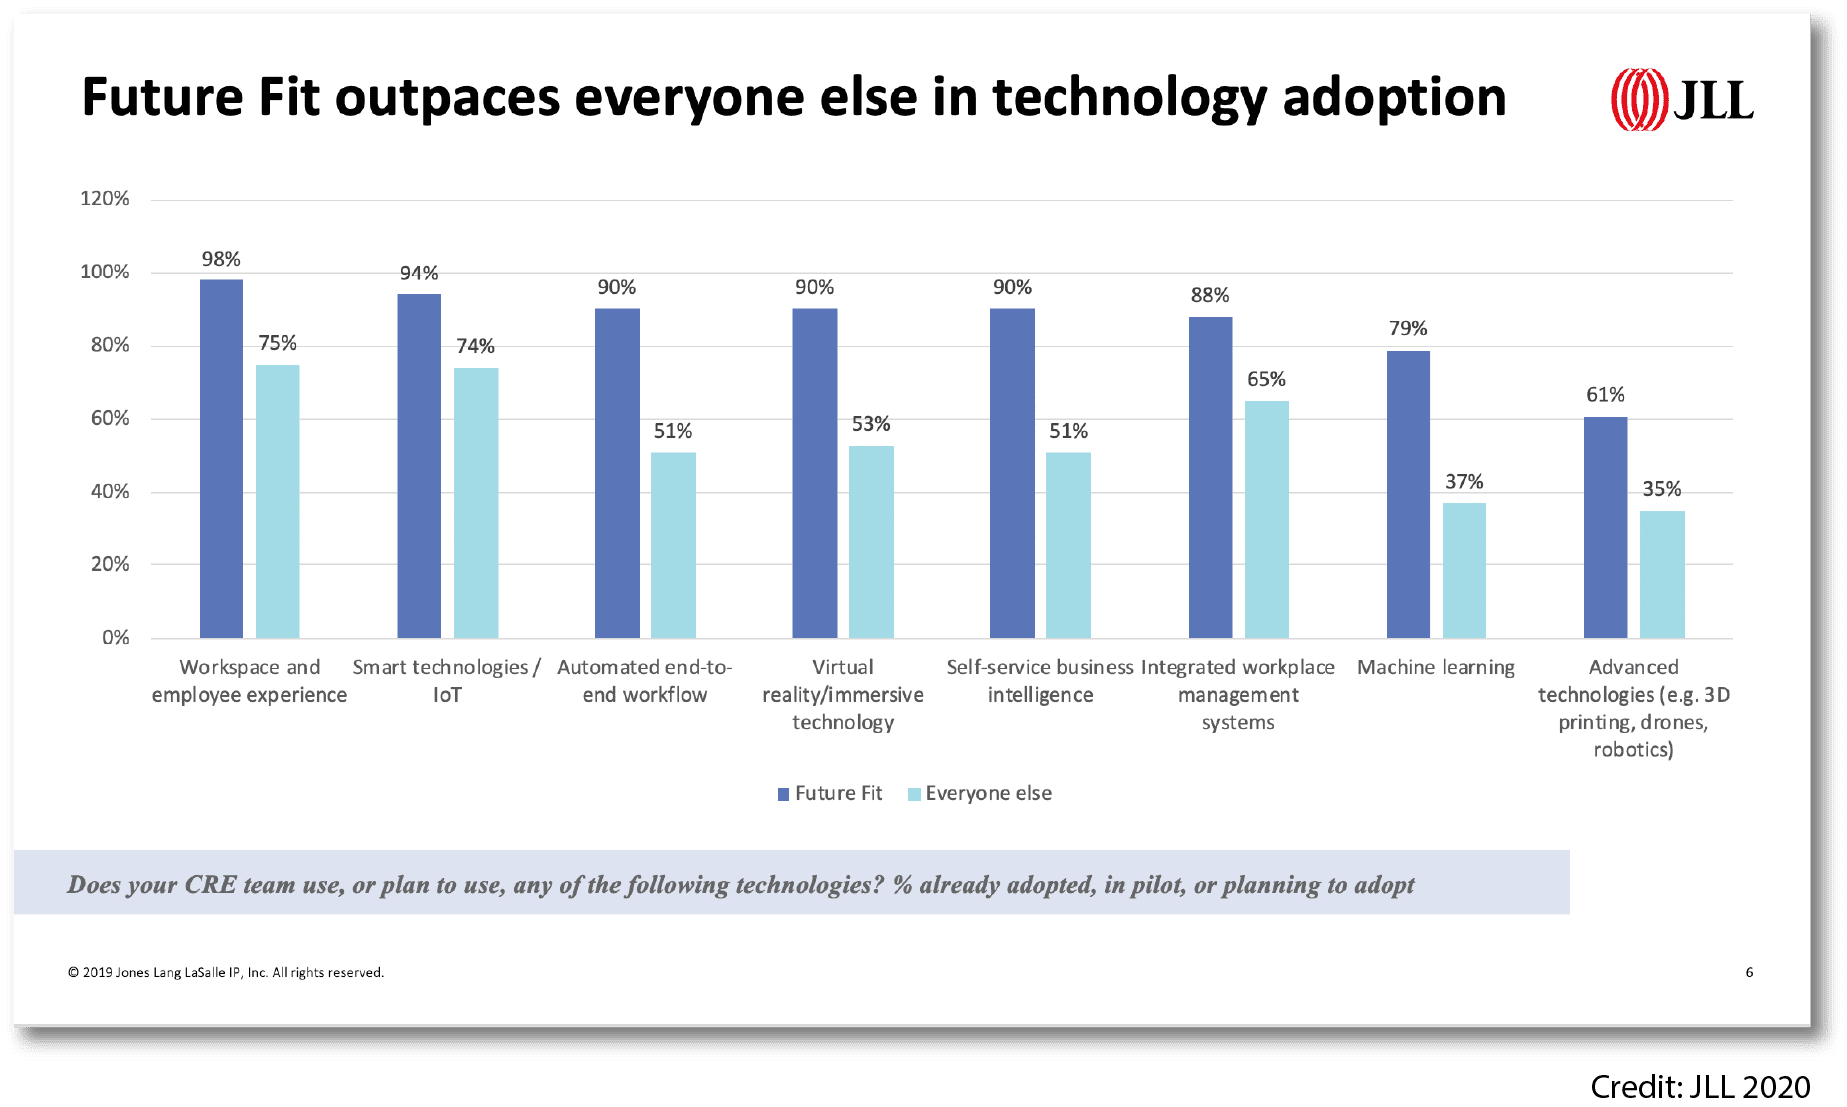 michael blog1 - Workplace Technology Adoption Will Continue to Drive Organizational Priorities